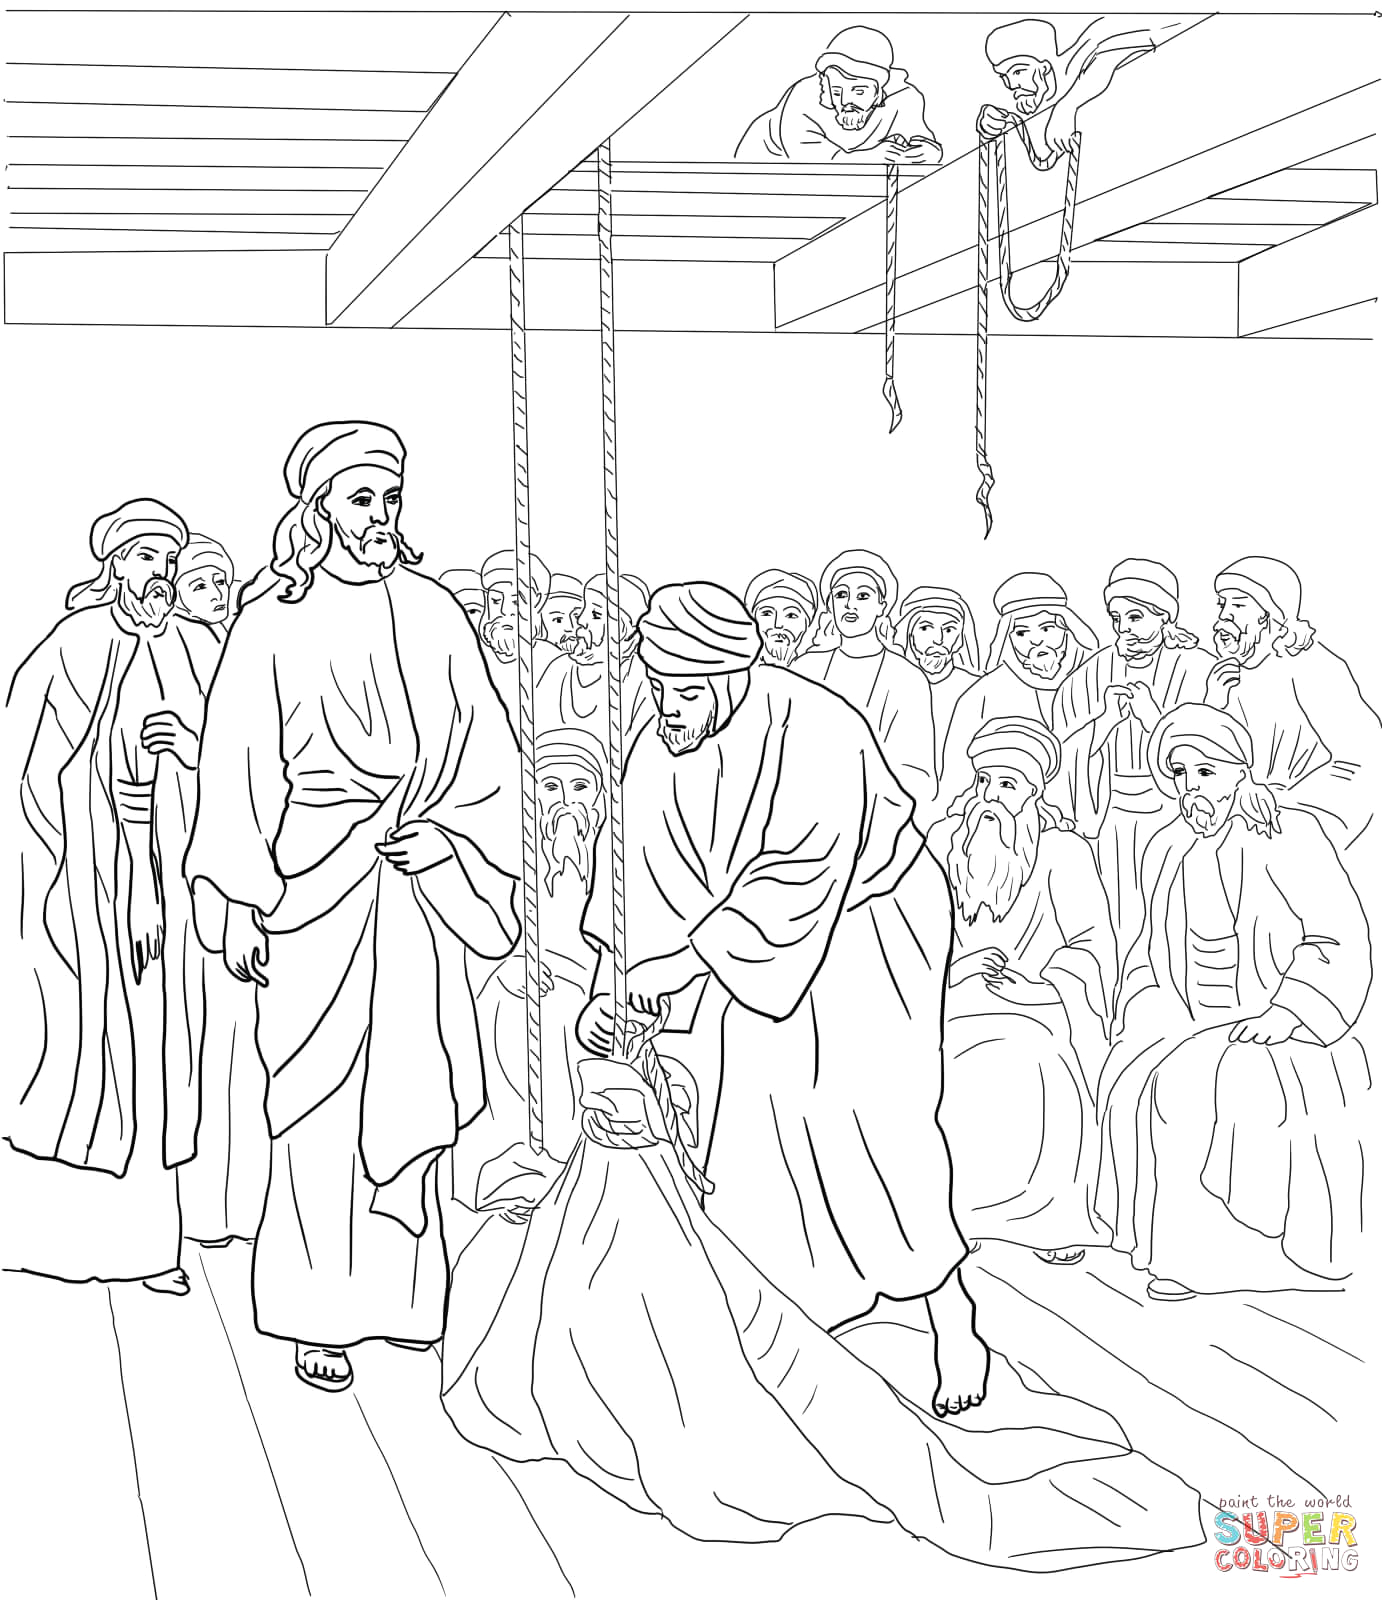 Free Coloring Page Jesus Heals the Paralyzed Man Jesus Heals the Paralyzed Man Coloring Page